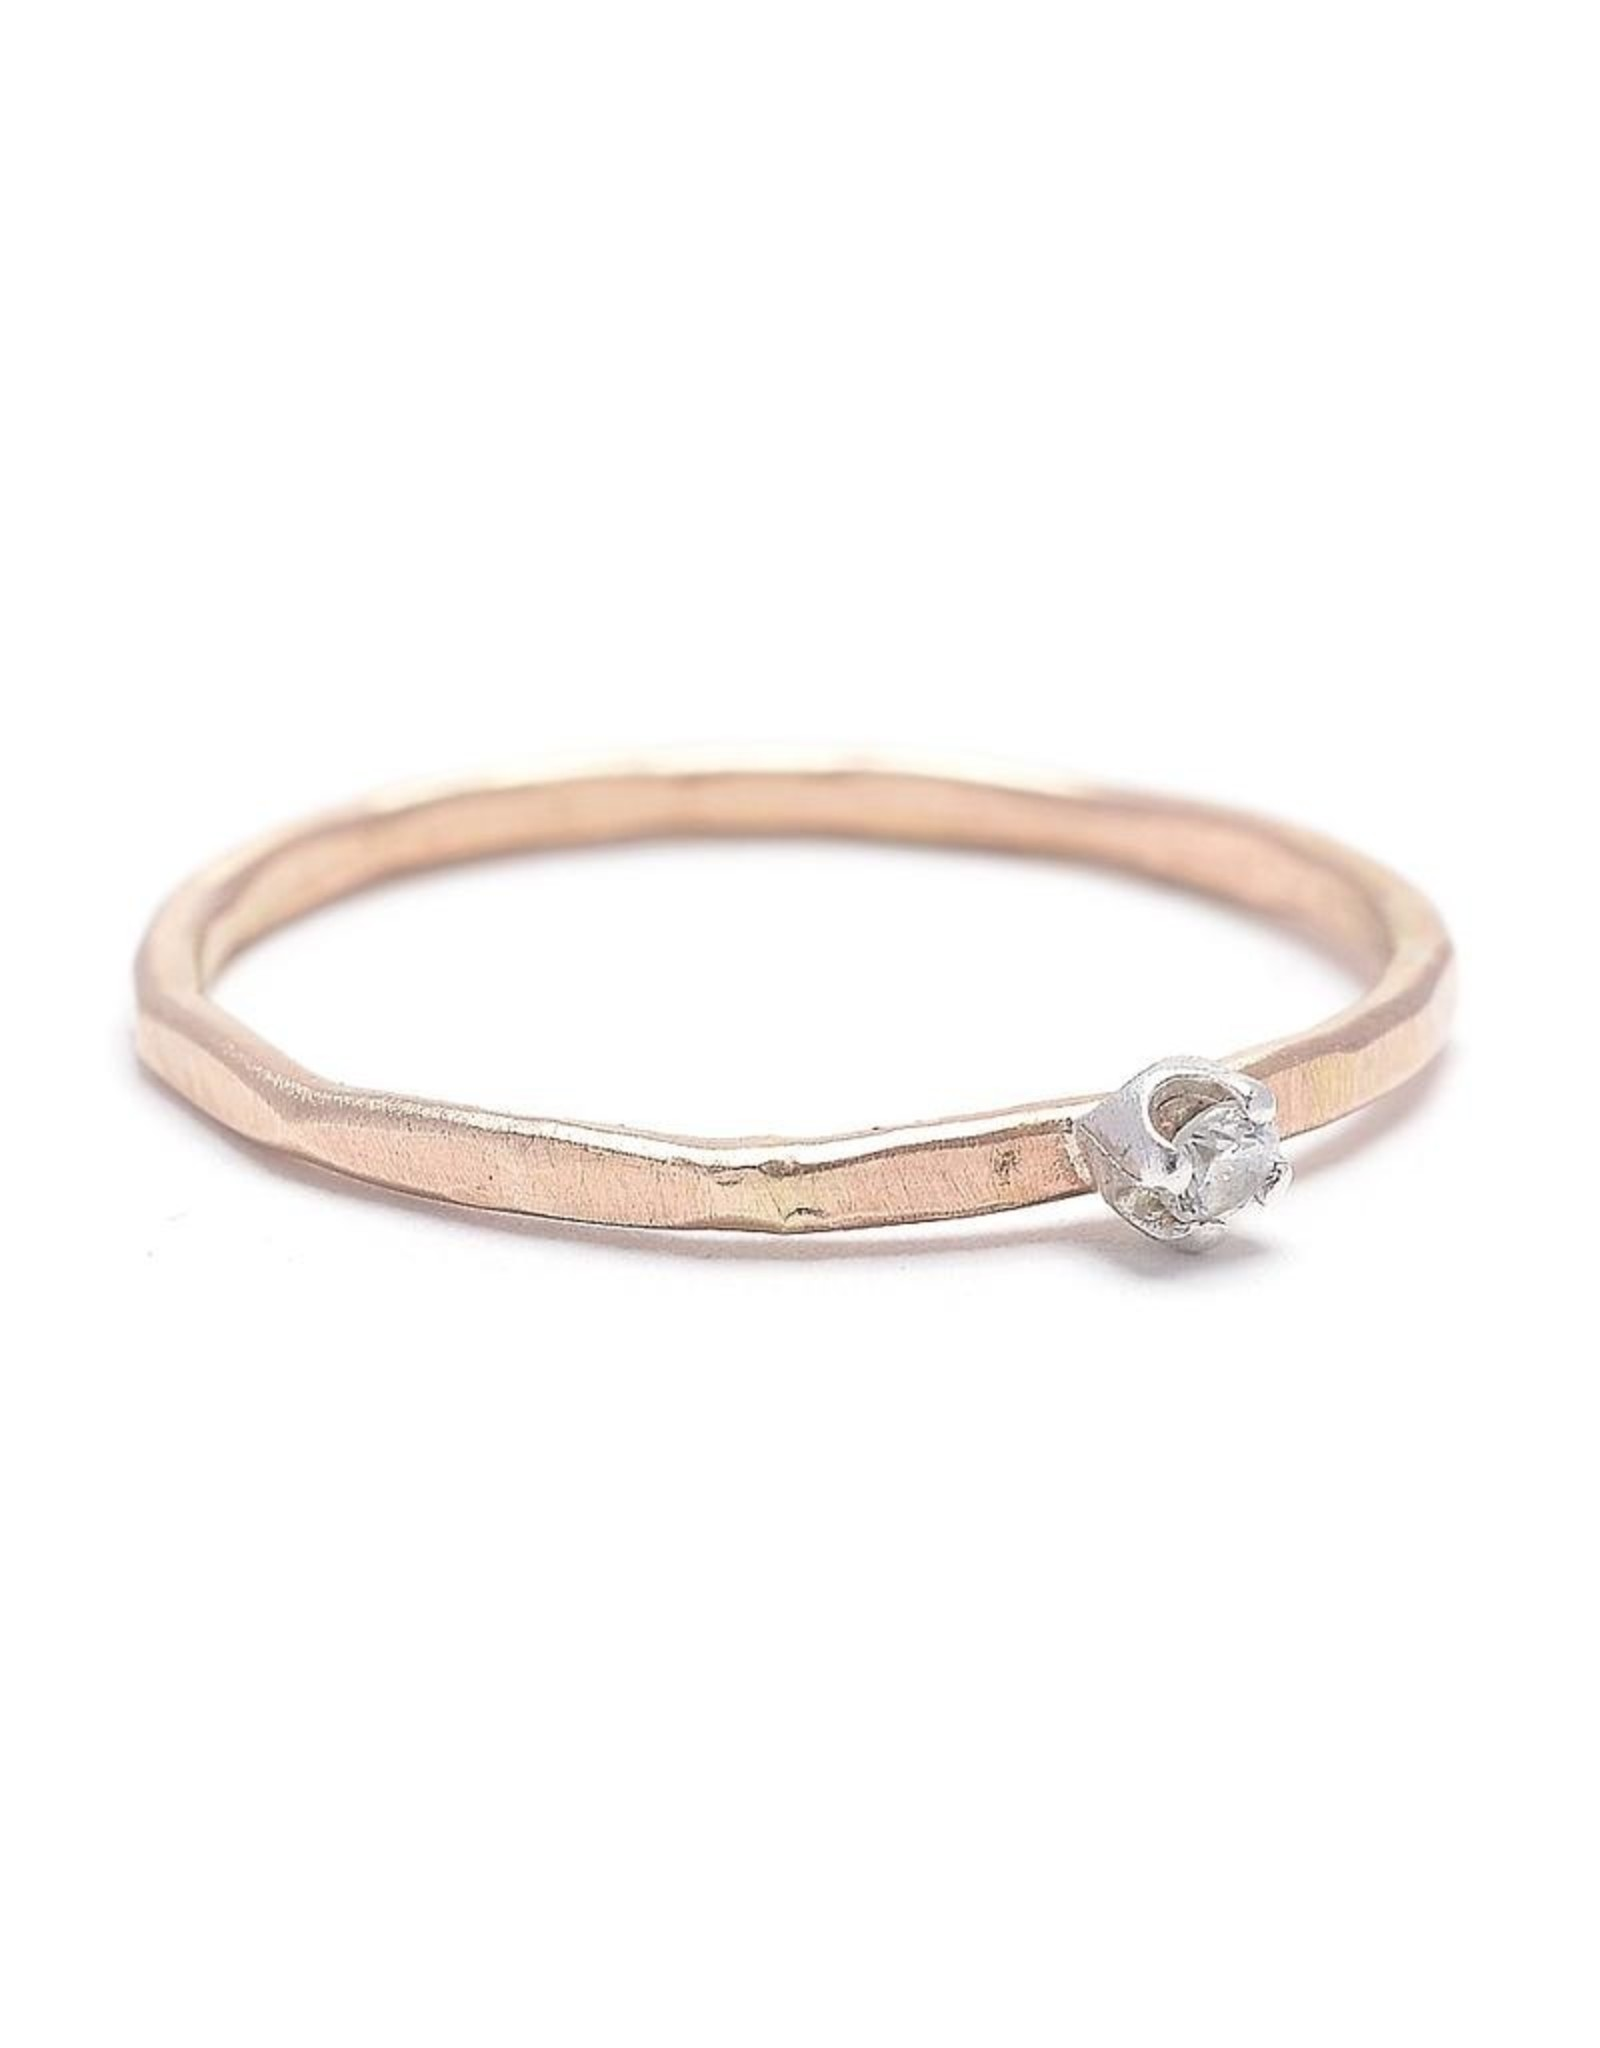 J&I Hammered Thin Band with CZ Stacking Ring